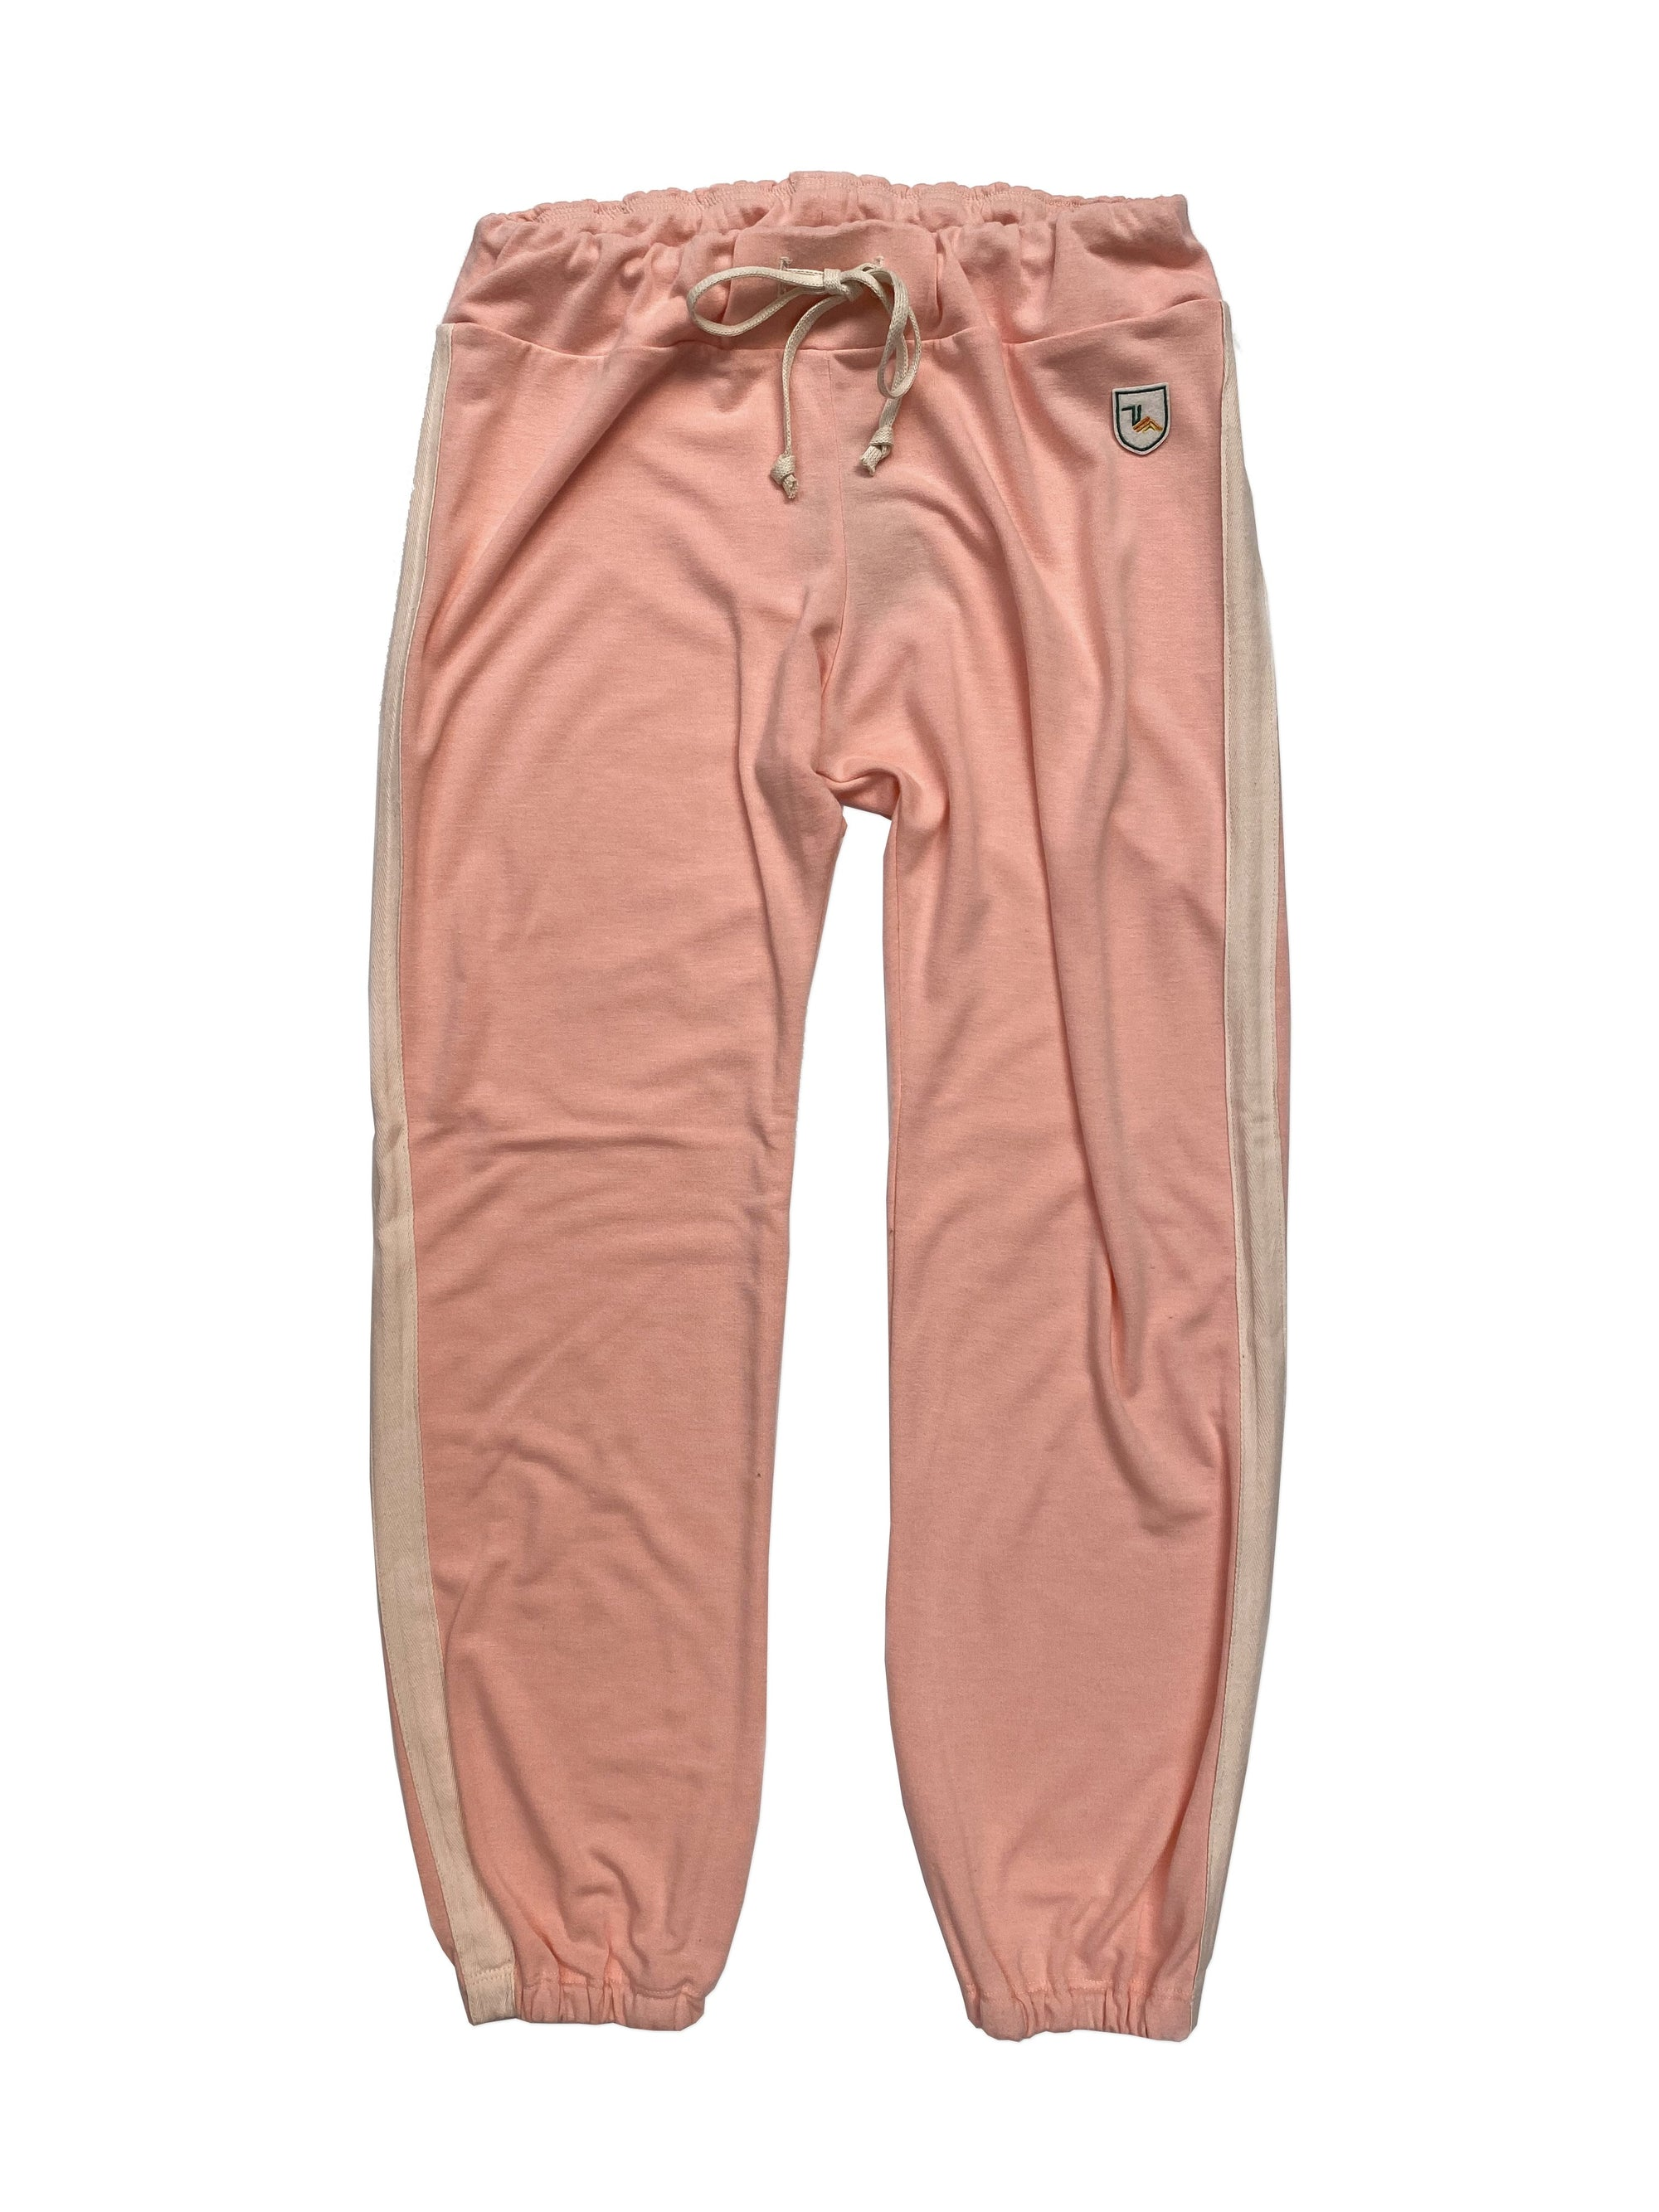 1973 Sweatpants in Peach